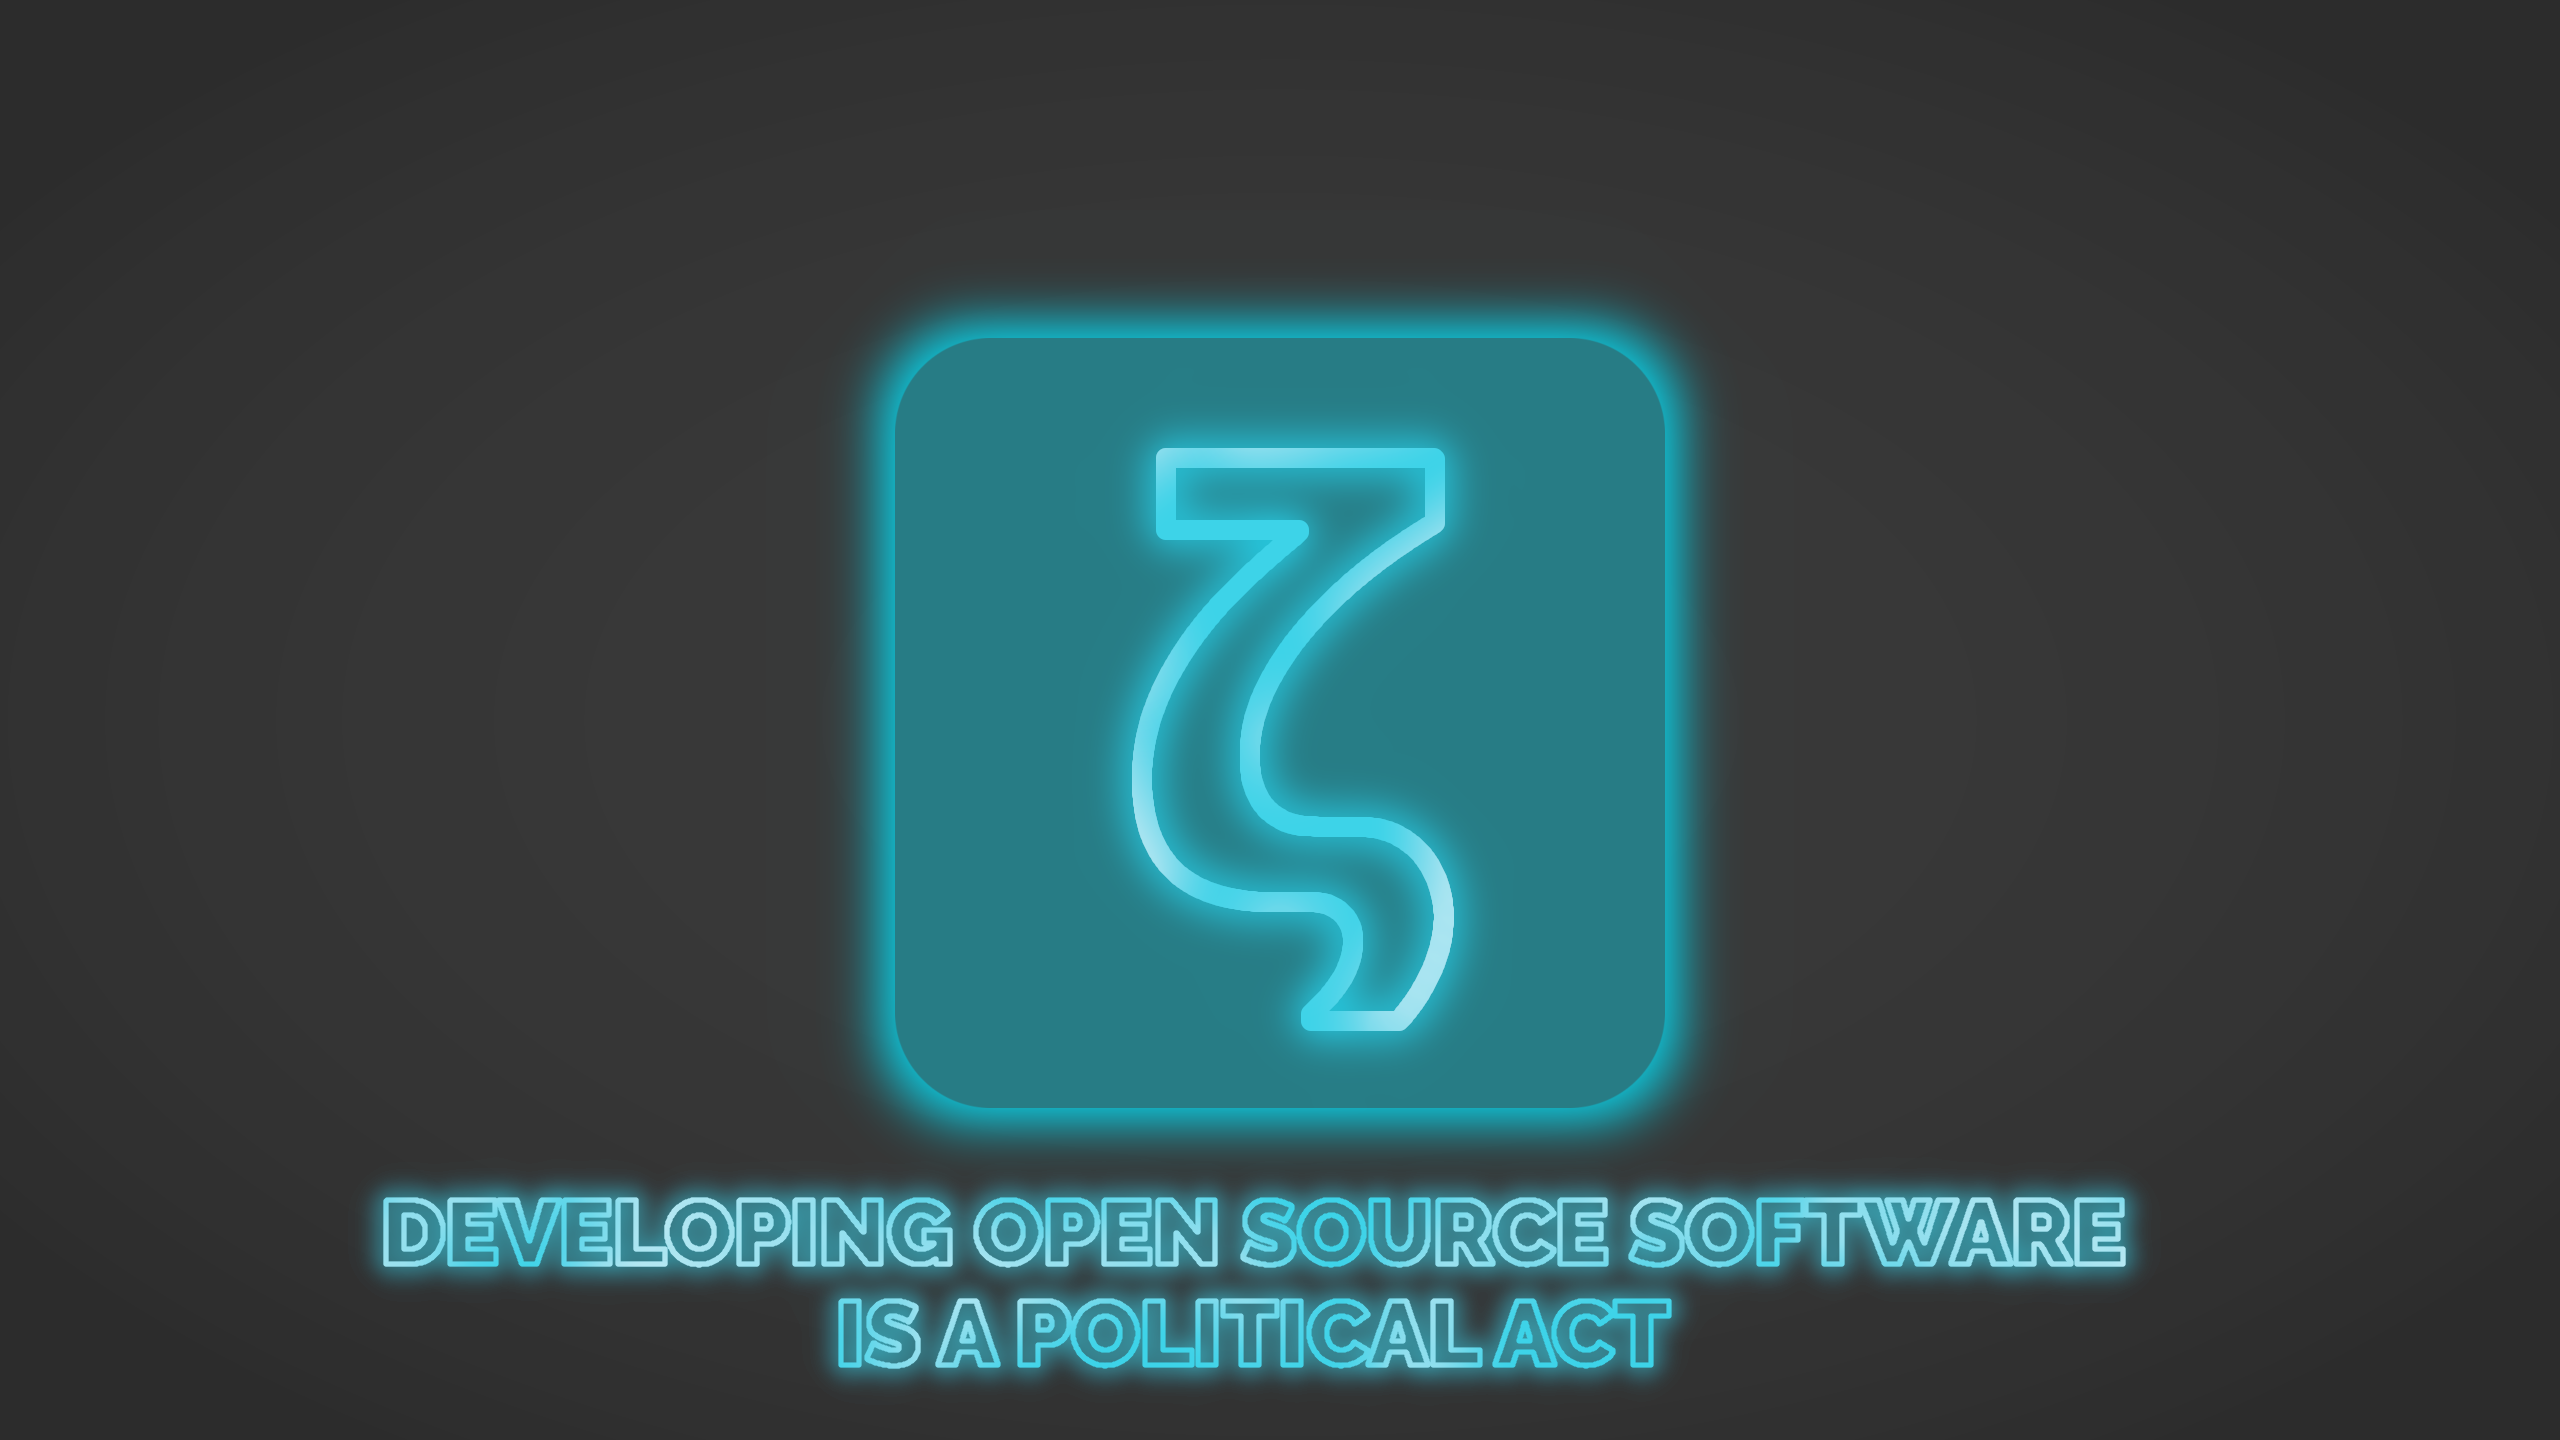 Release: Developing Open Source is a Political Act